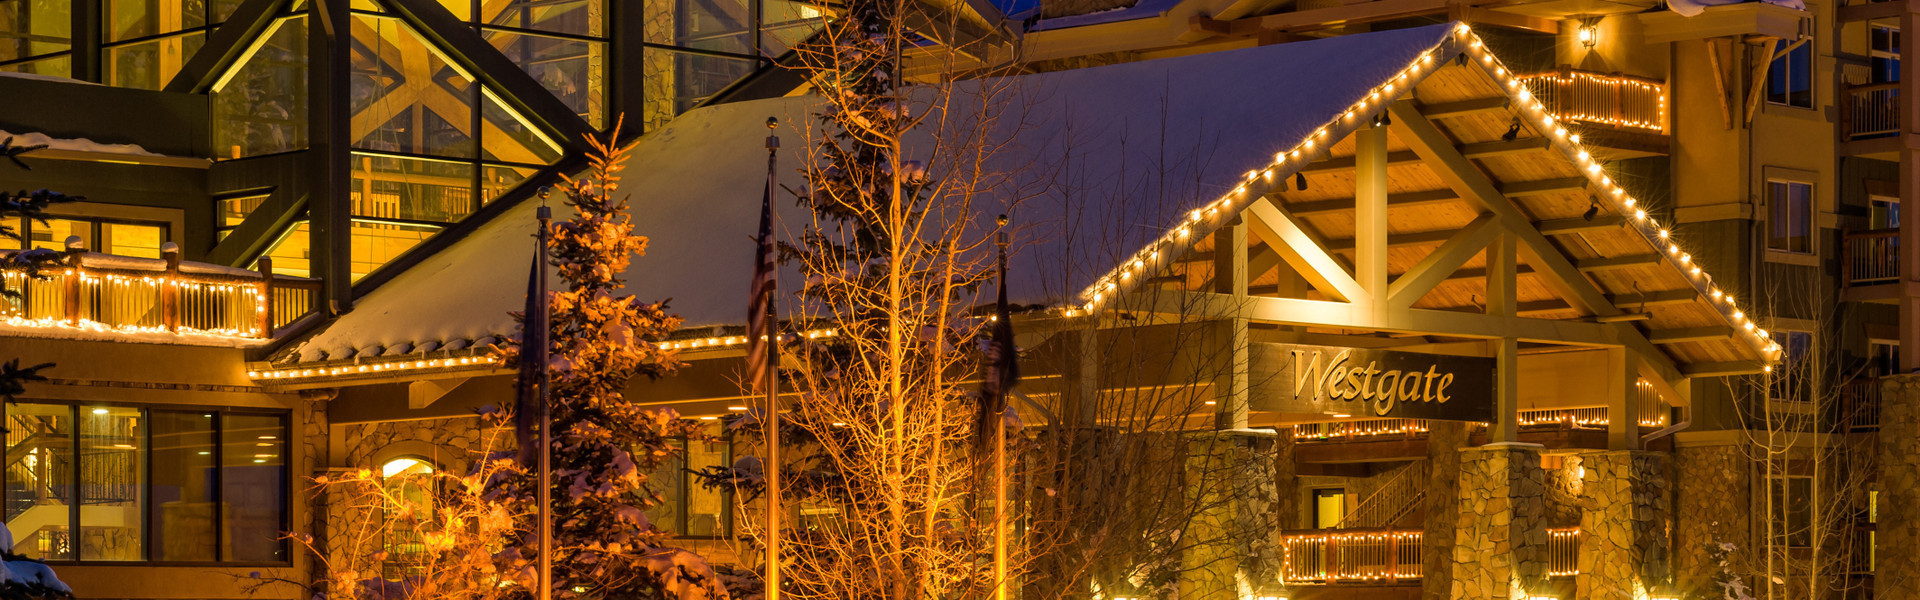 Discounts for Park City, Utah Hotel and Ski Resort | Resort Exterior